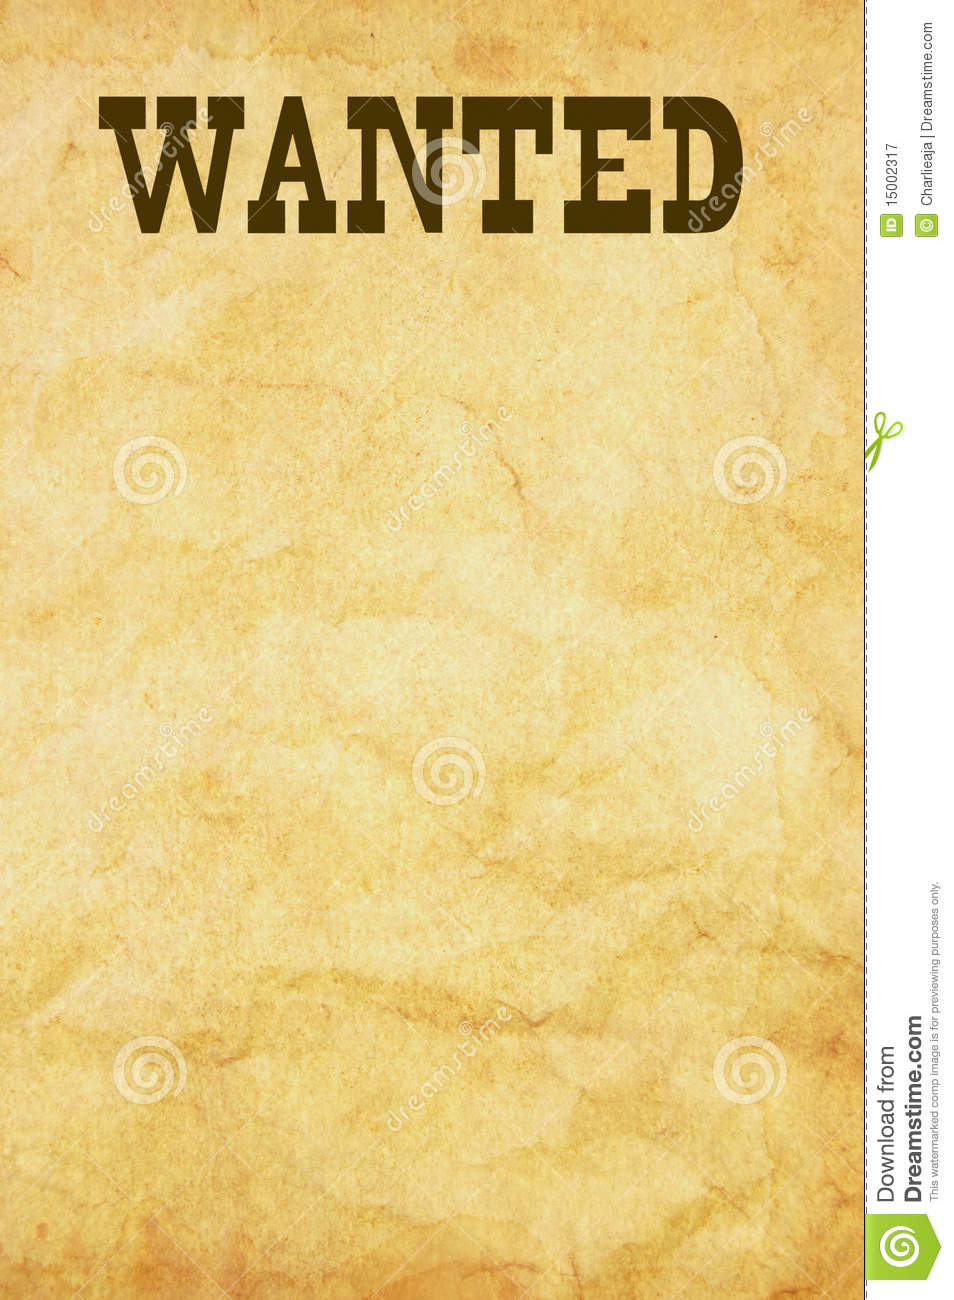 013 Free Wanted Poster Template Printable Ideas ~ Ulyssesroom - Wanted Poster Printable Free